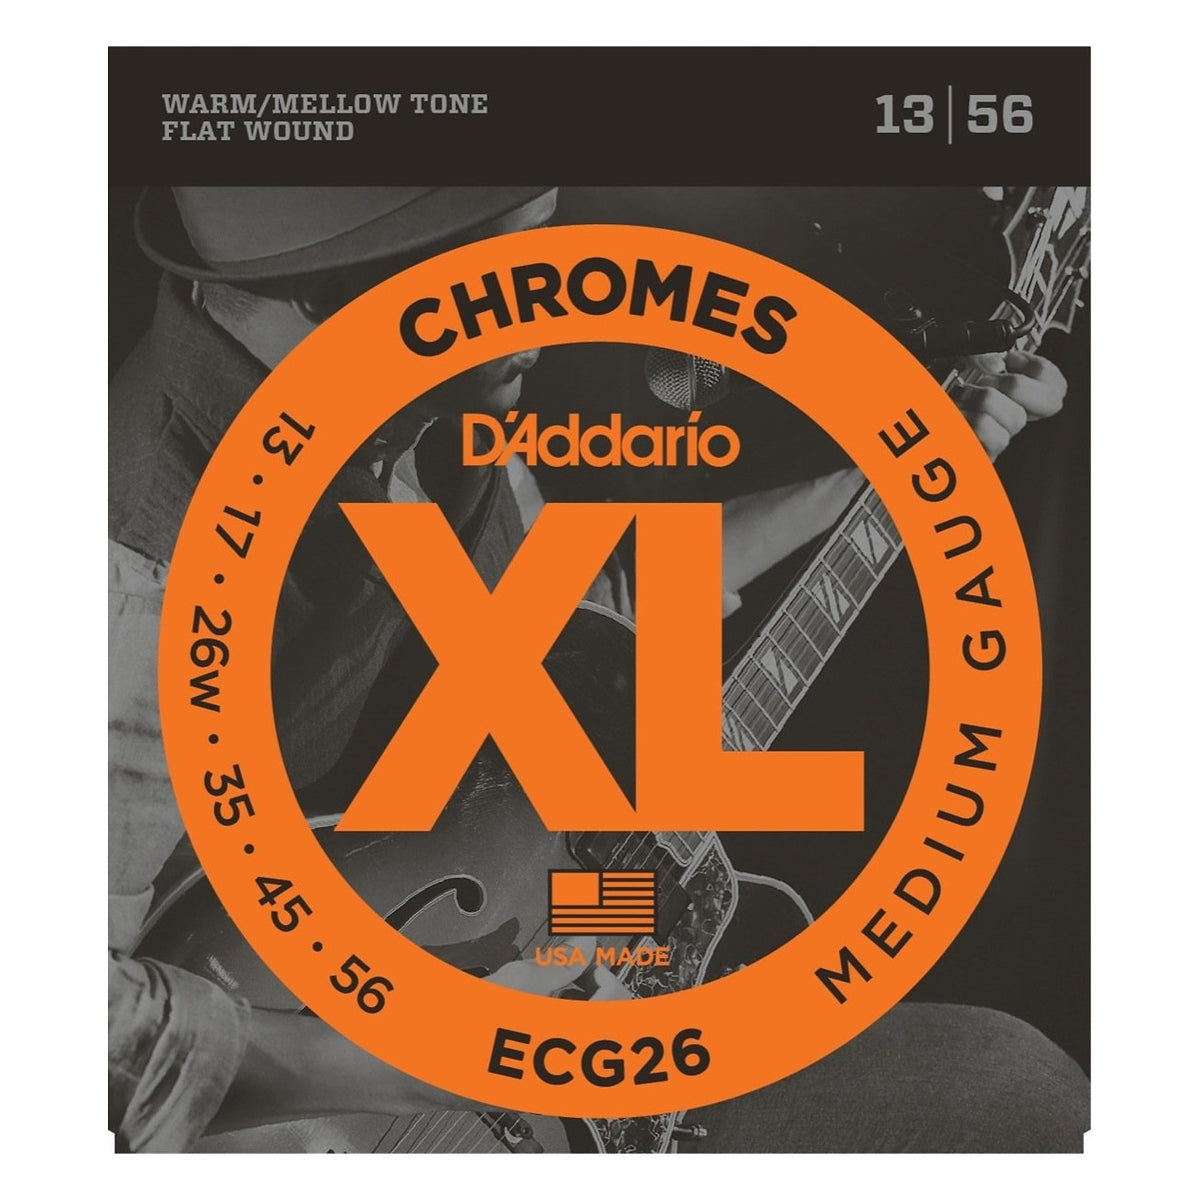 D'Addario ECG26 Chromes Flatwound Electric Guitar Strings (Medium Gauge, 13-56)